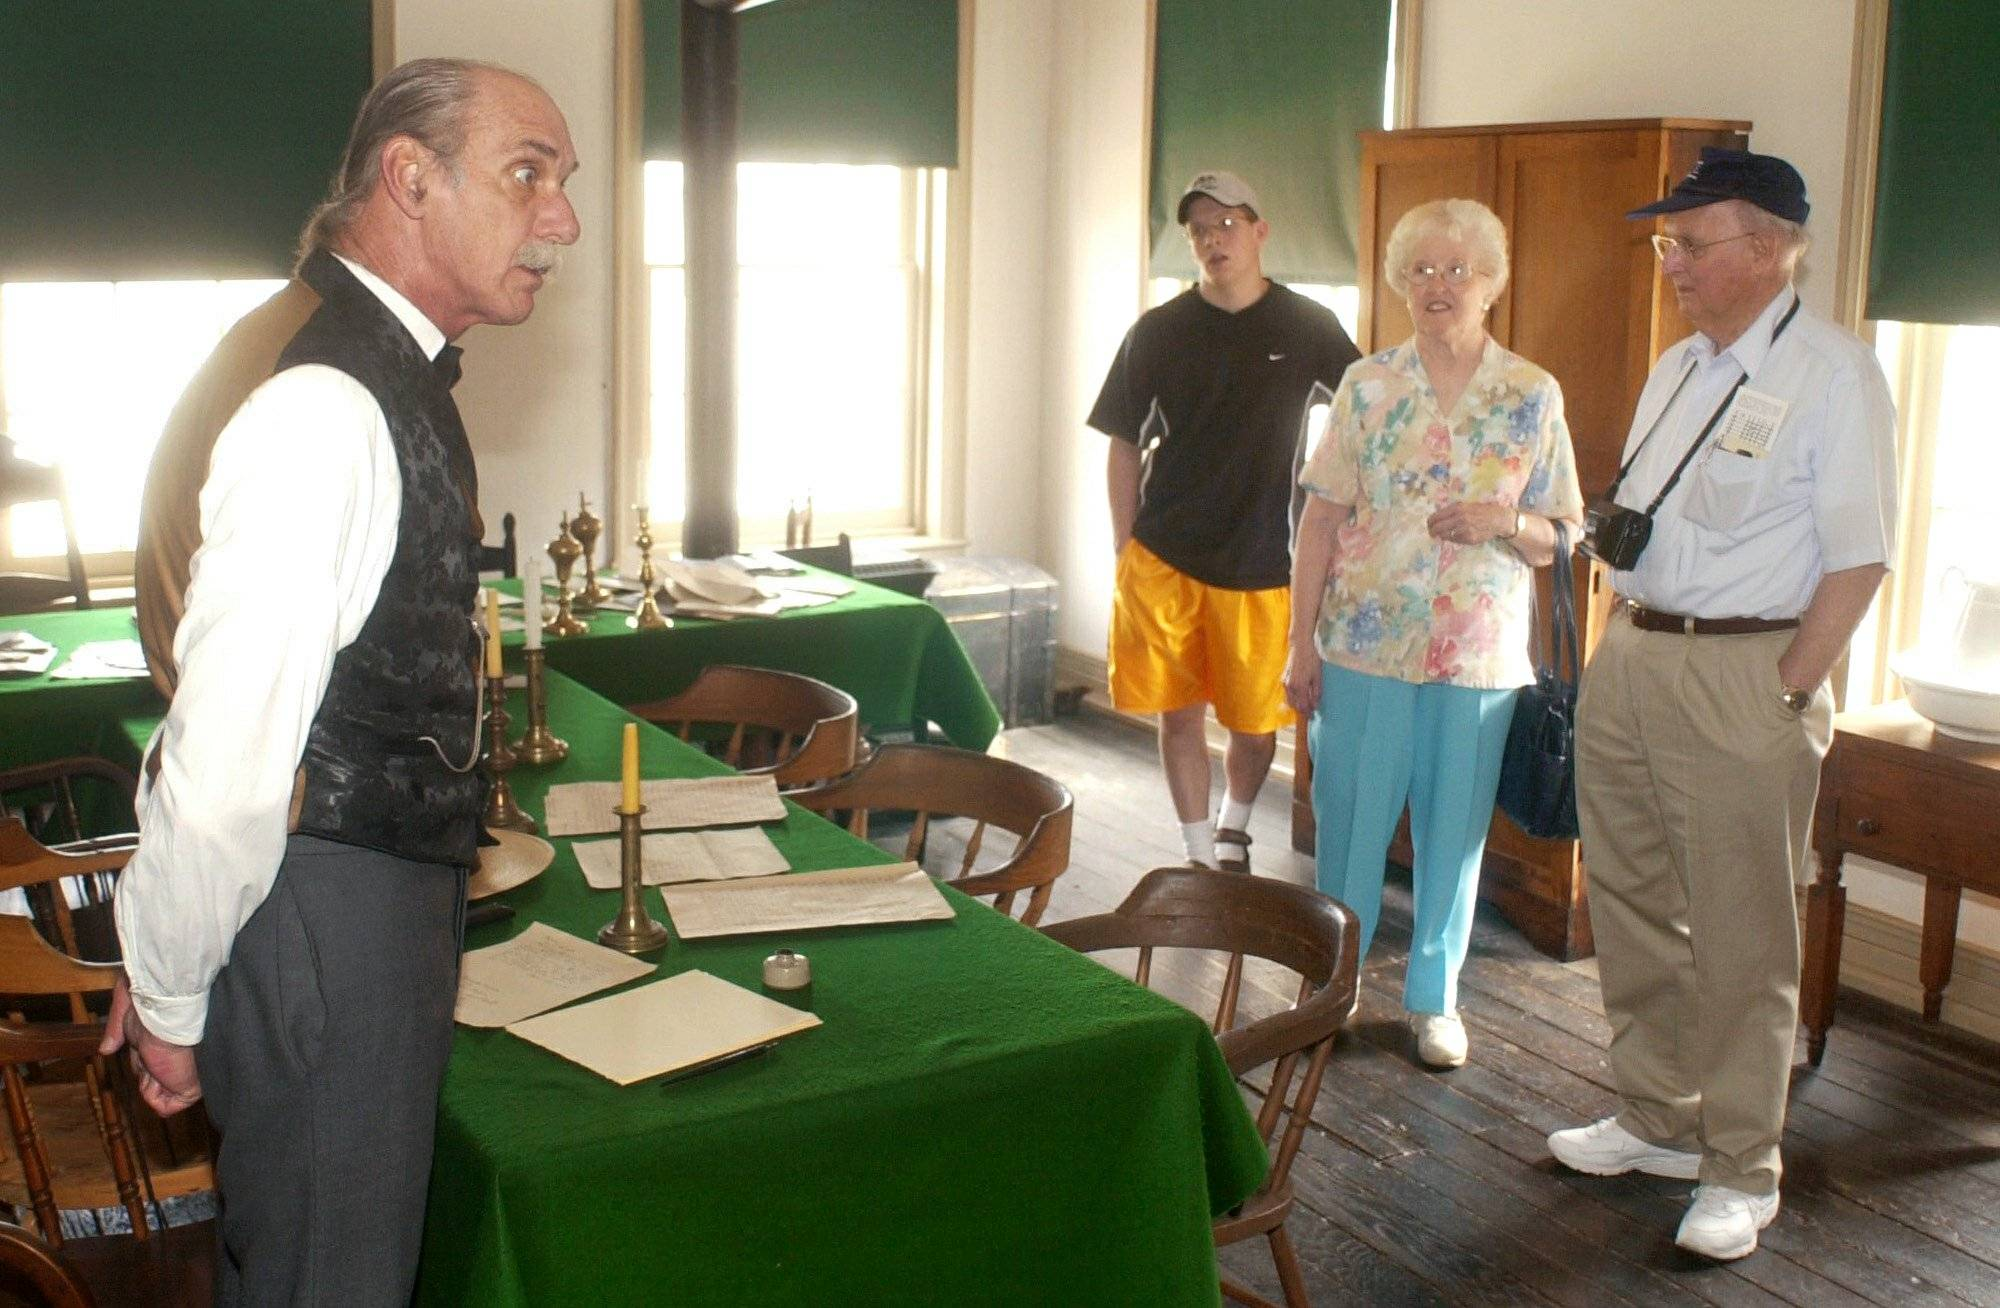 Bill Sherer, left, a historic site interpreter for the Lincoln-Herndon Law Offices in Springfield, portrays Gibson Harris, a law clerk of Lincoln's for a group of tourists.